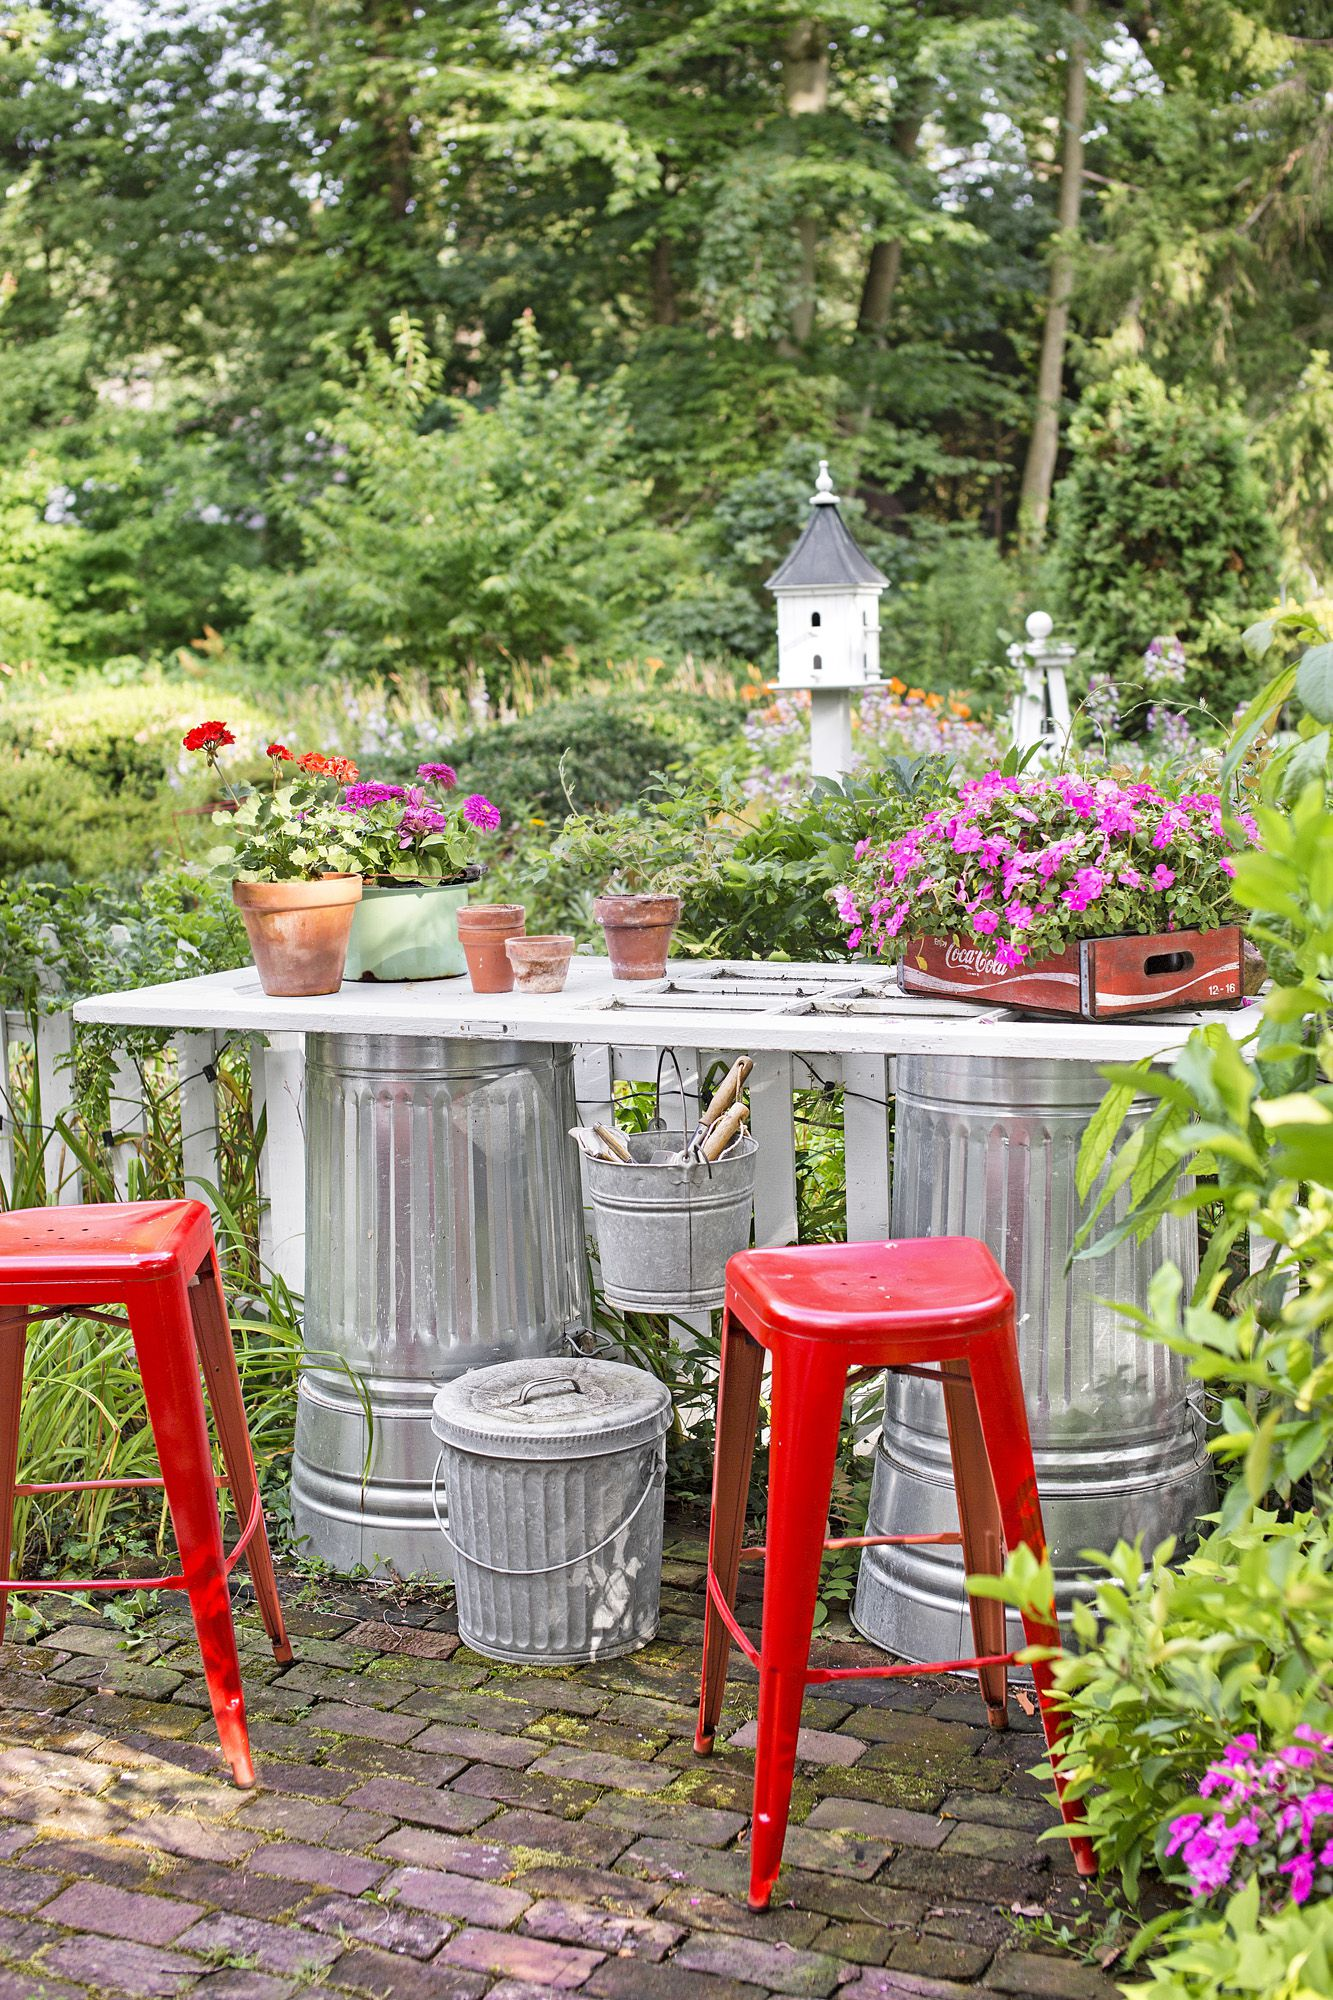 82 DIY Backyard Design Ideas - DIY Backyard Decor Tips